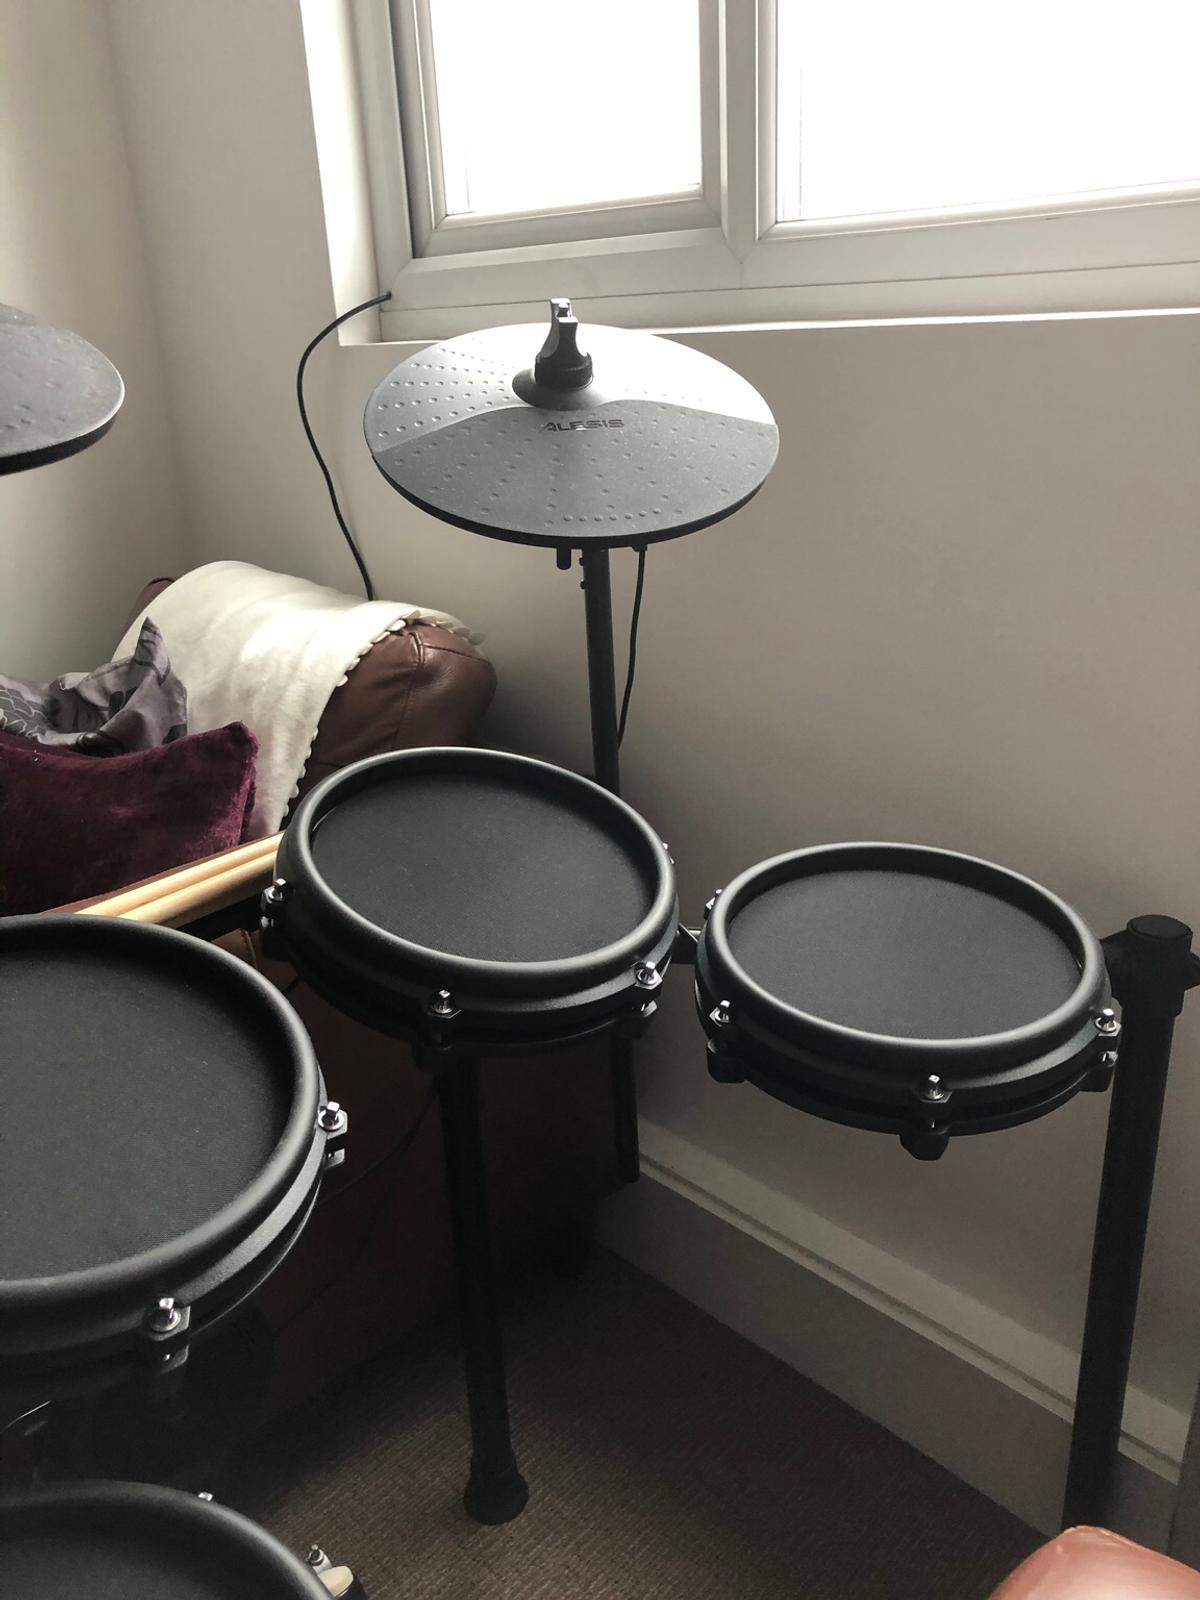 Alesis Nitro Mesh Electric Drum Kit in BR2 Bromley for £300 00 for